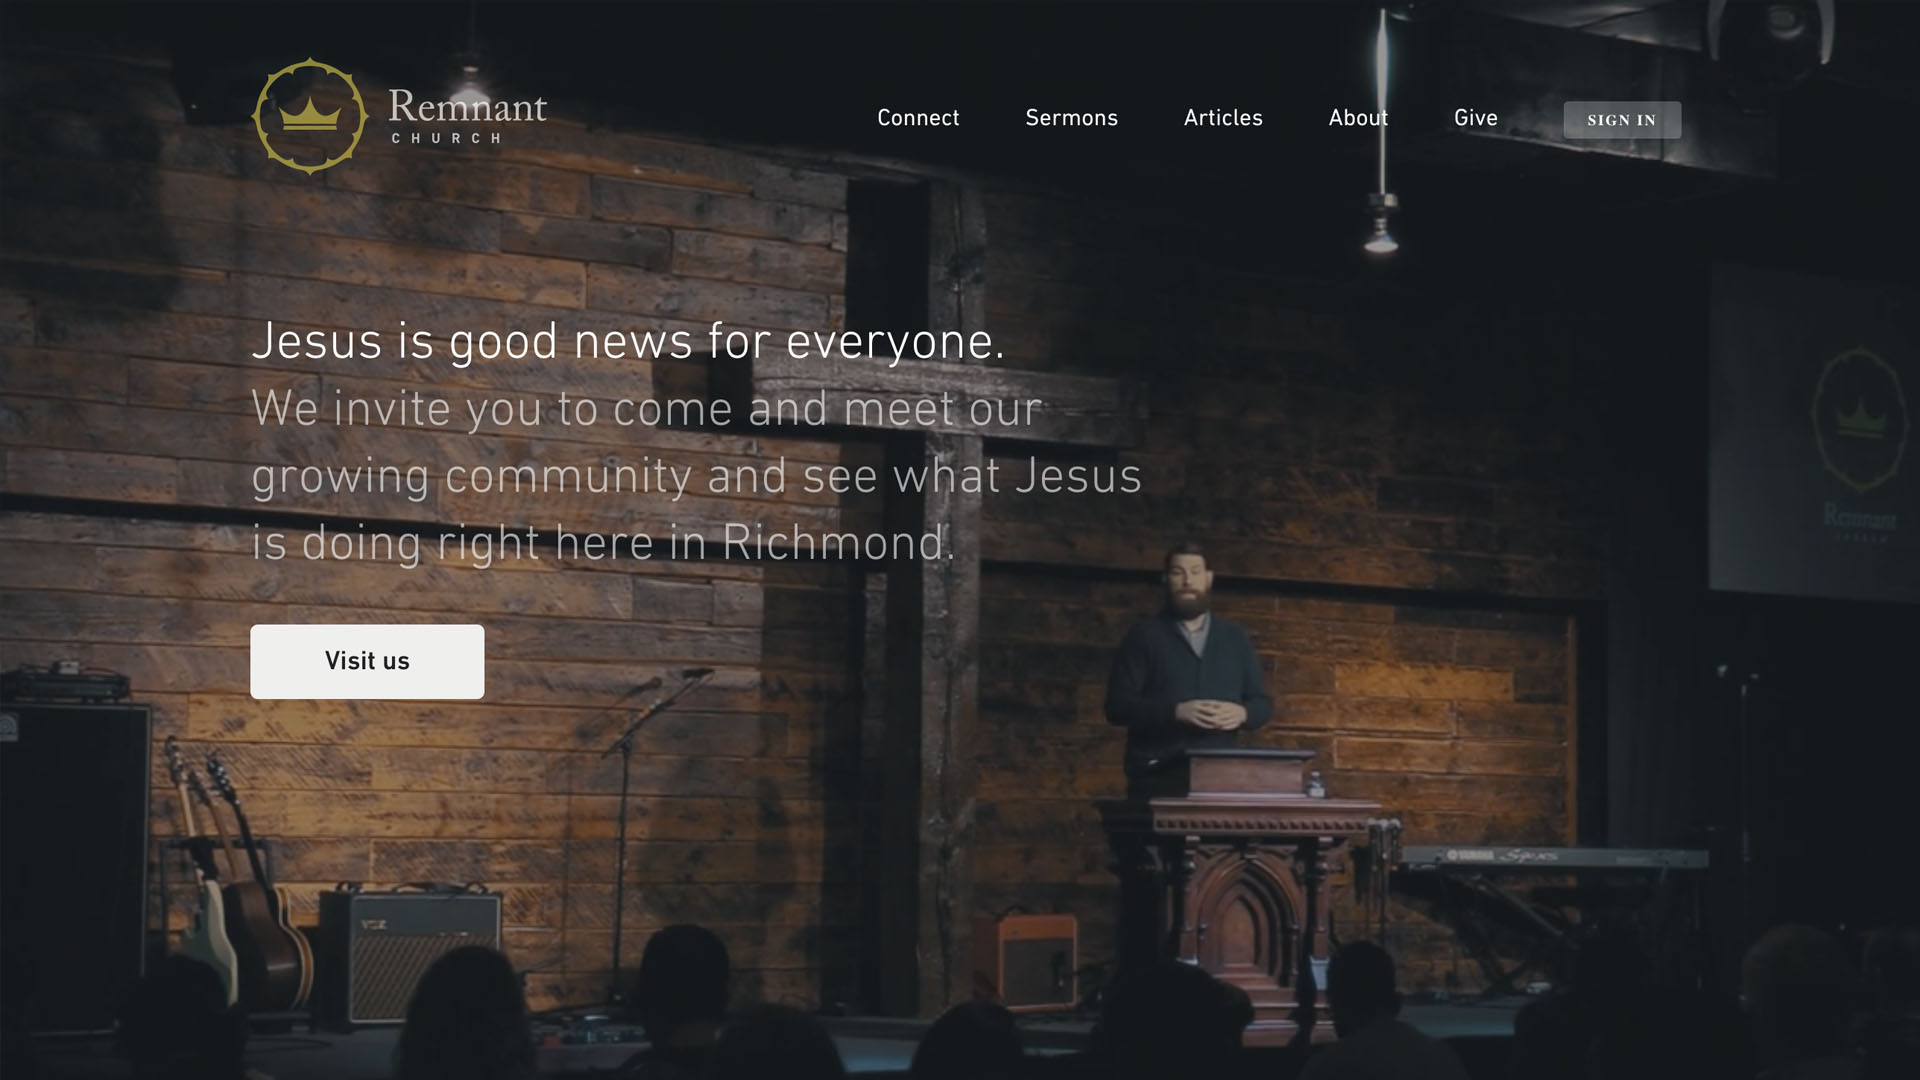 Church Websites Example - Remnant Church - https://www.remnantrva.com/